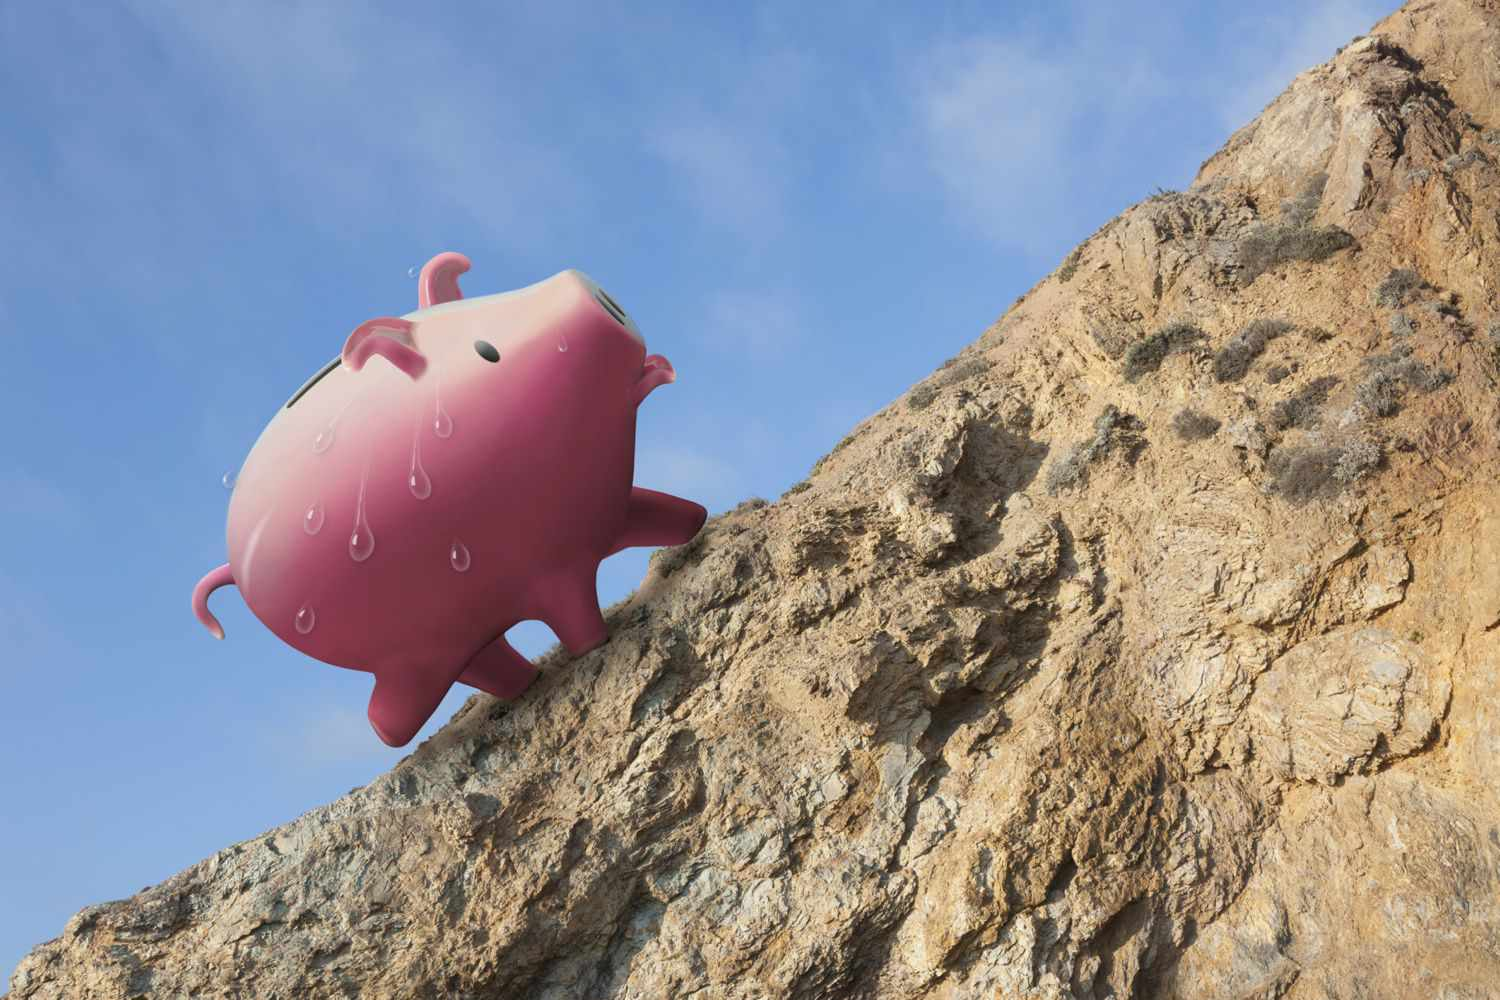 Piggy bank covered in sweat as he climbs mountain to reach financial goals for the New Year